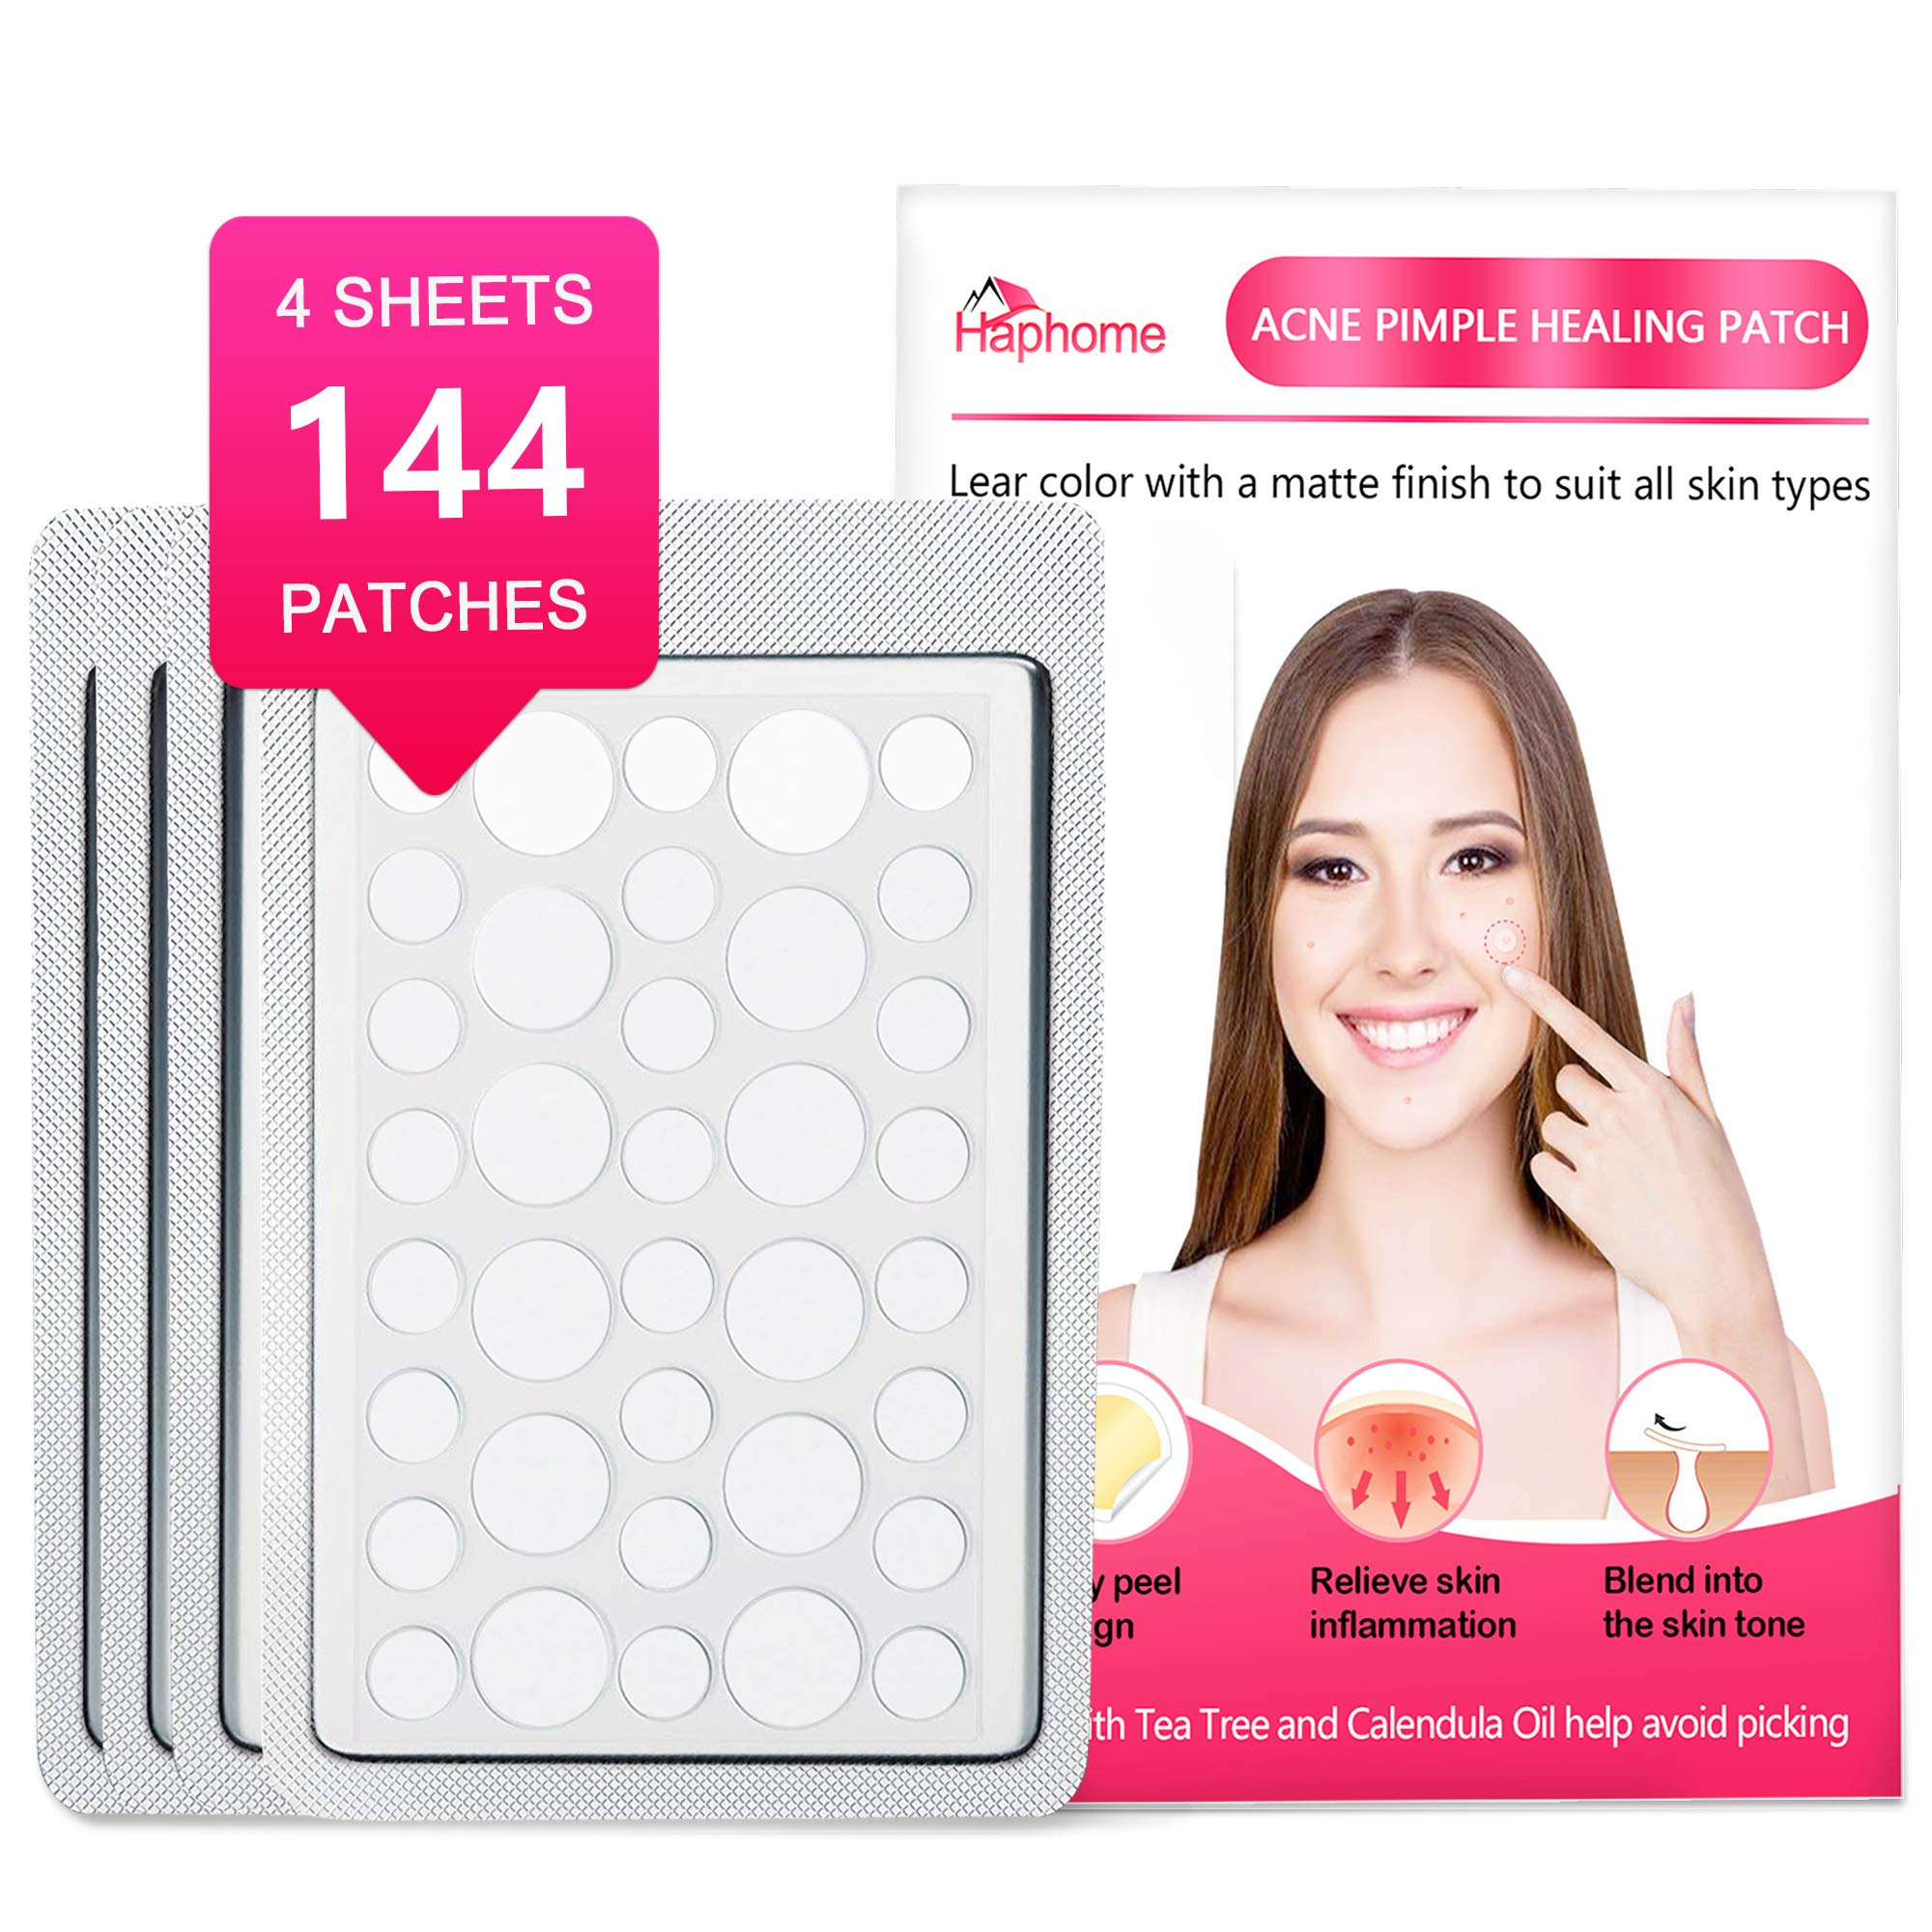 Haphome Pimple Patch, Acne Patch, Tea Tree and Calendula Oil Hydrocolloid Bandages for Acne Dots, Acne Spot Treatment Zit Patch (144 Patches, 4 Pack) by Haphomee